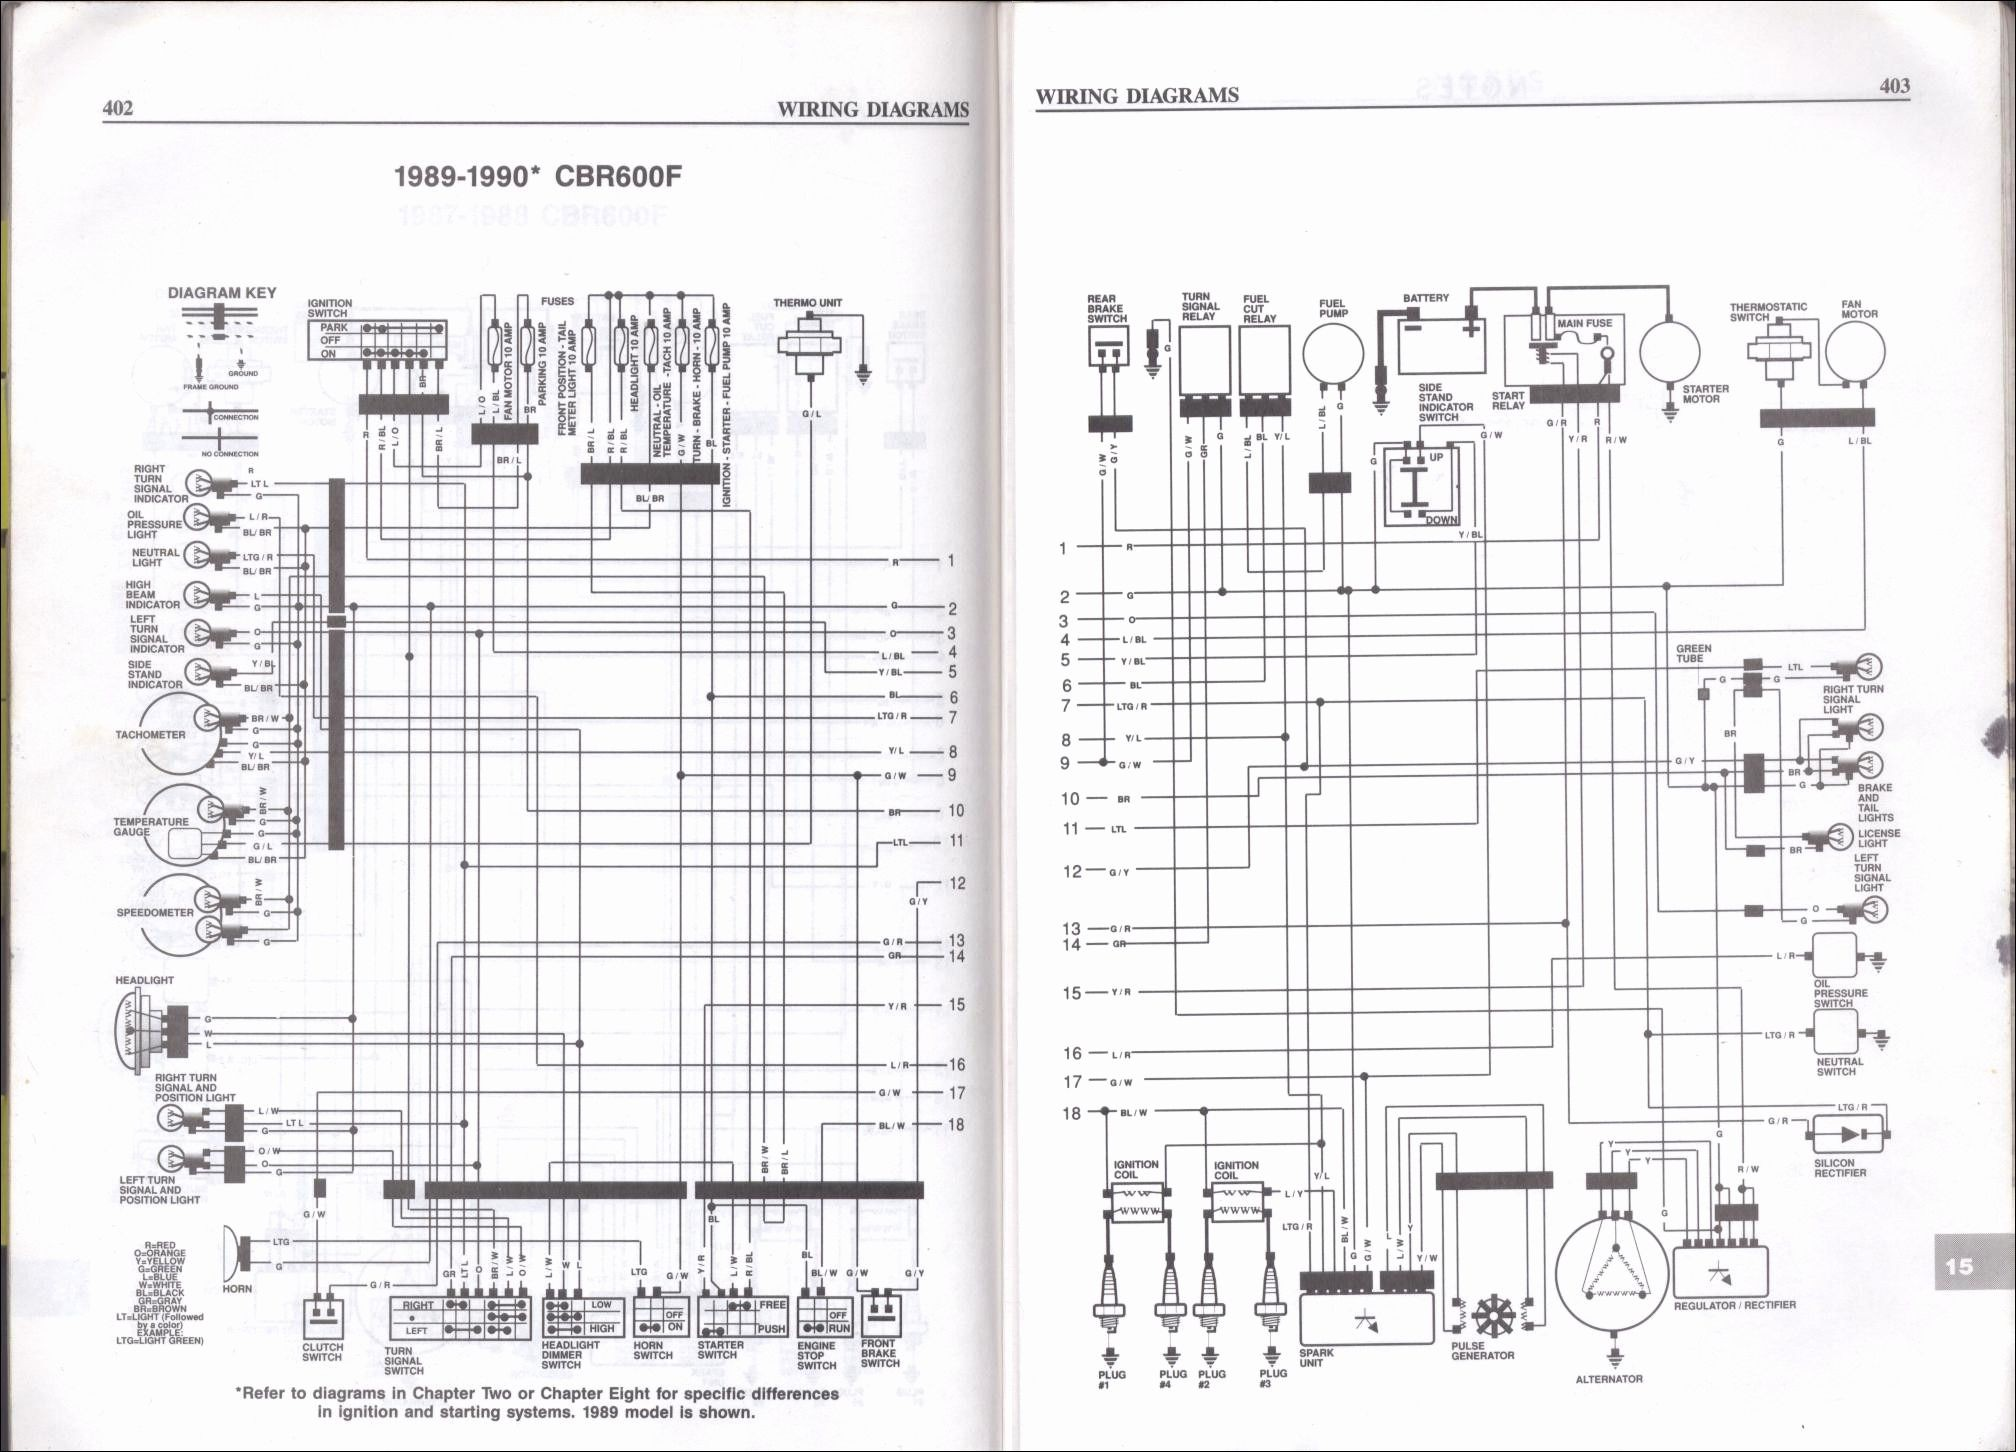 2004 Grand Cherokee Electrical Diagram Honda C70 Wiring Diagram Auto Electrical Wiring Diagram Of 2004 Grand Cherokee Electrical Diagram